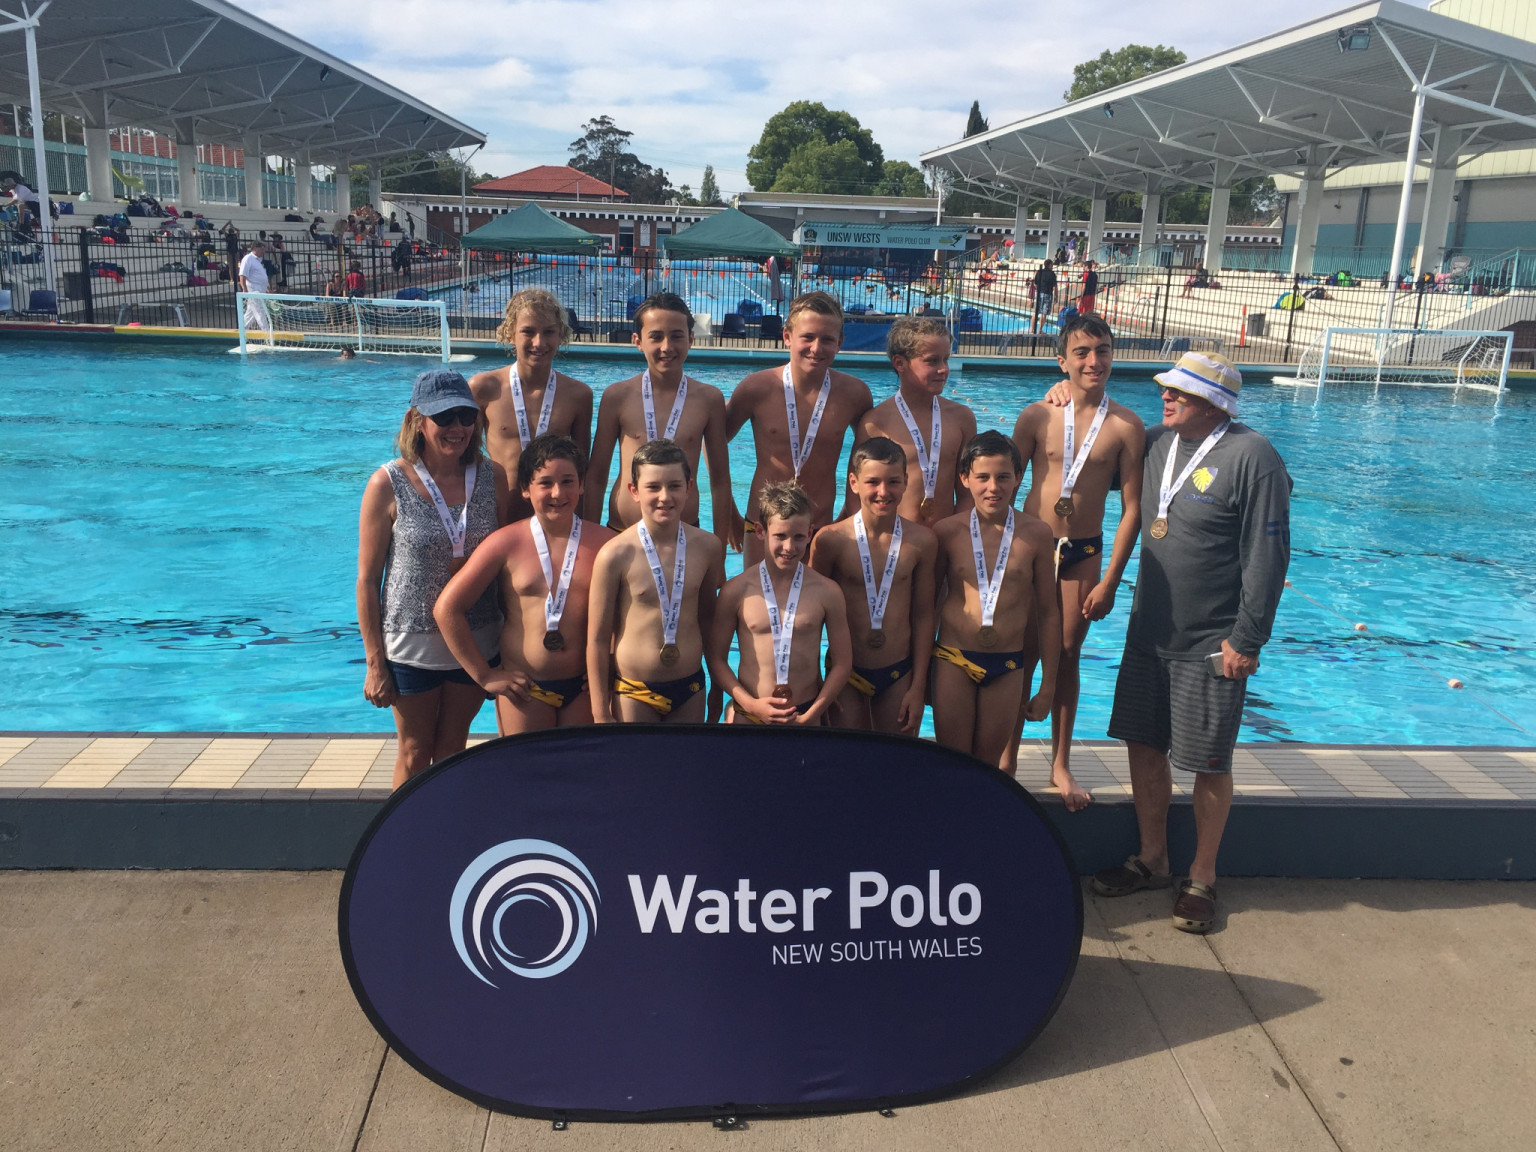 water polo clubs sydney - photo#4